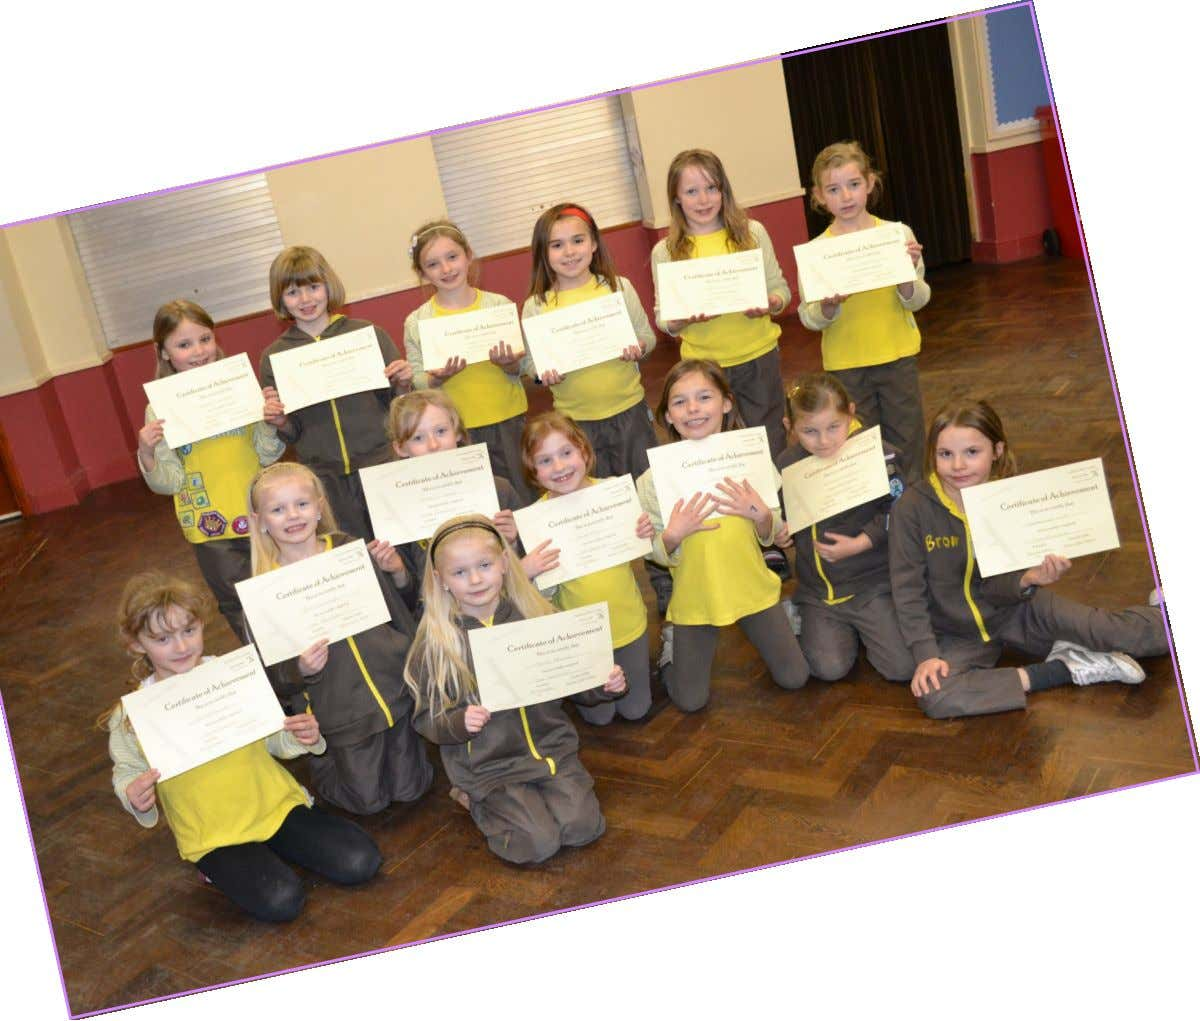 19 St Marks Brownie Pack with their astronomy Wise Certificates. www.astronomy - wise.com